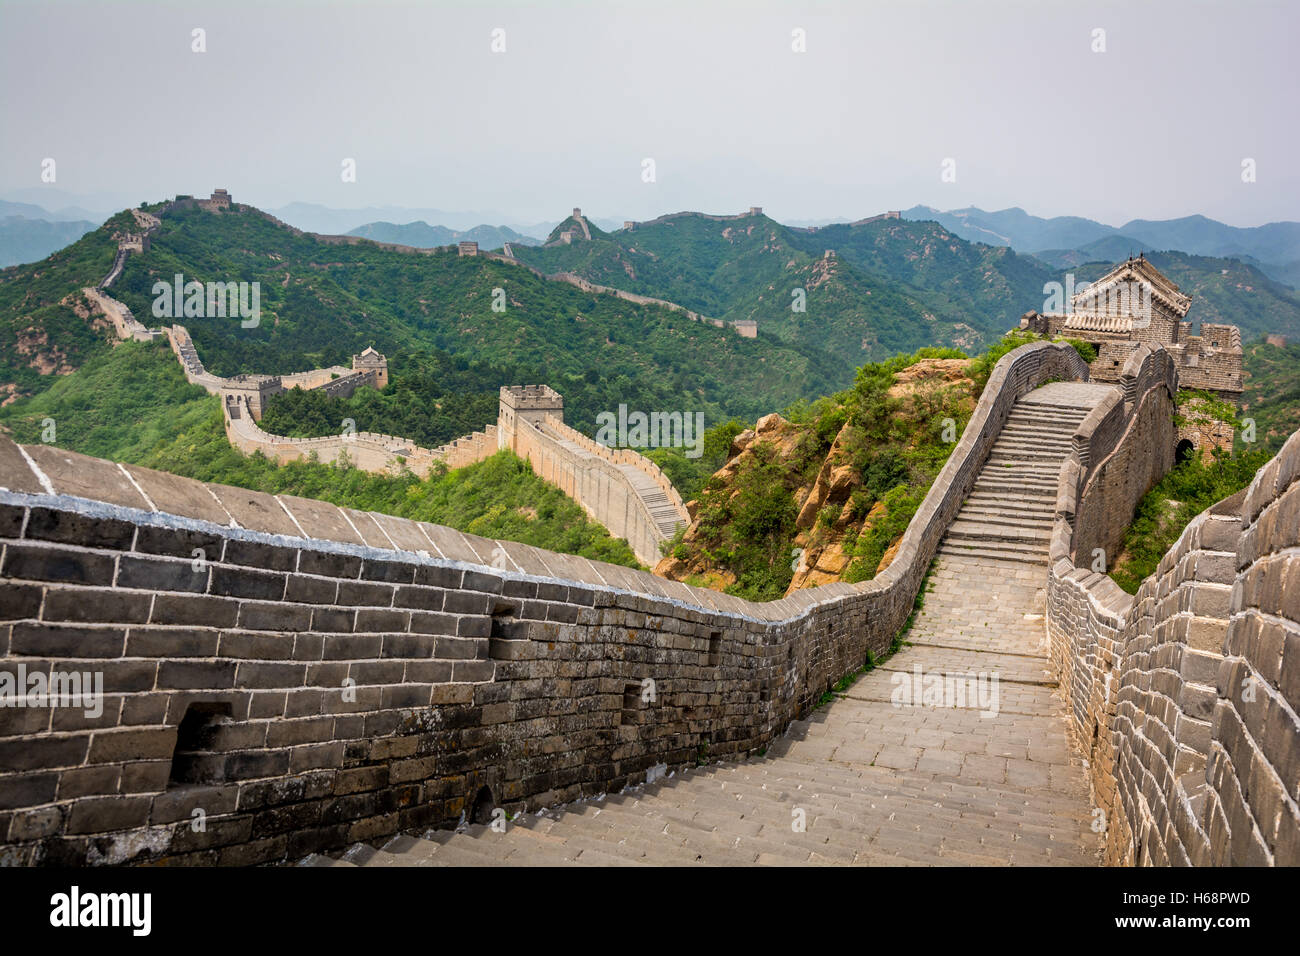 China Great Wall, Beijing - Stock Image